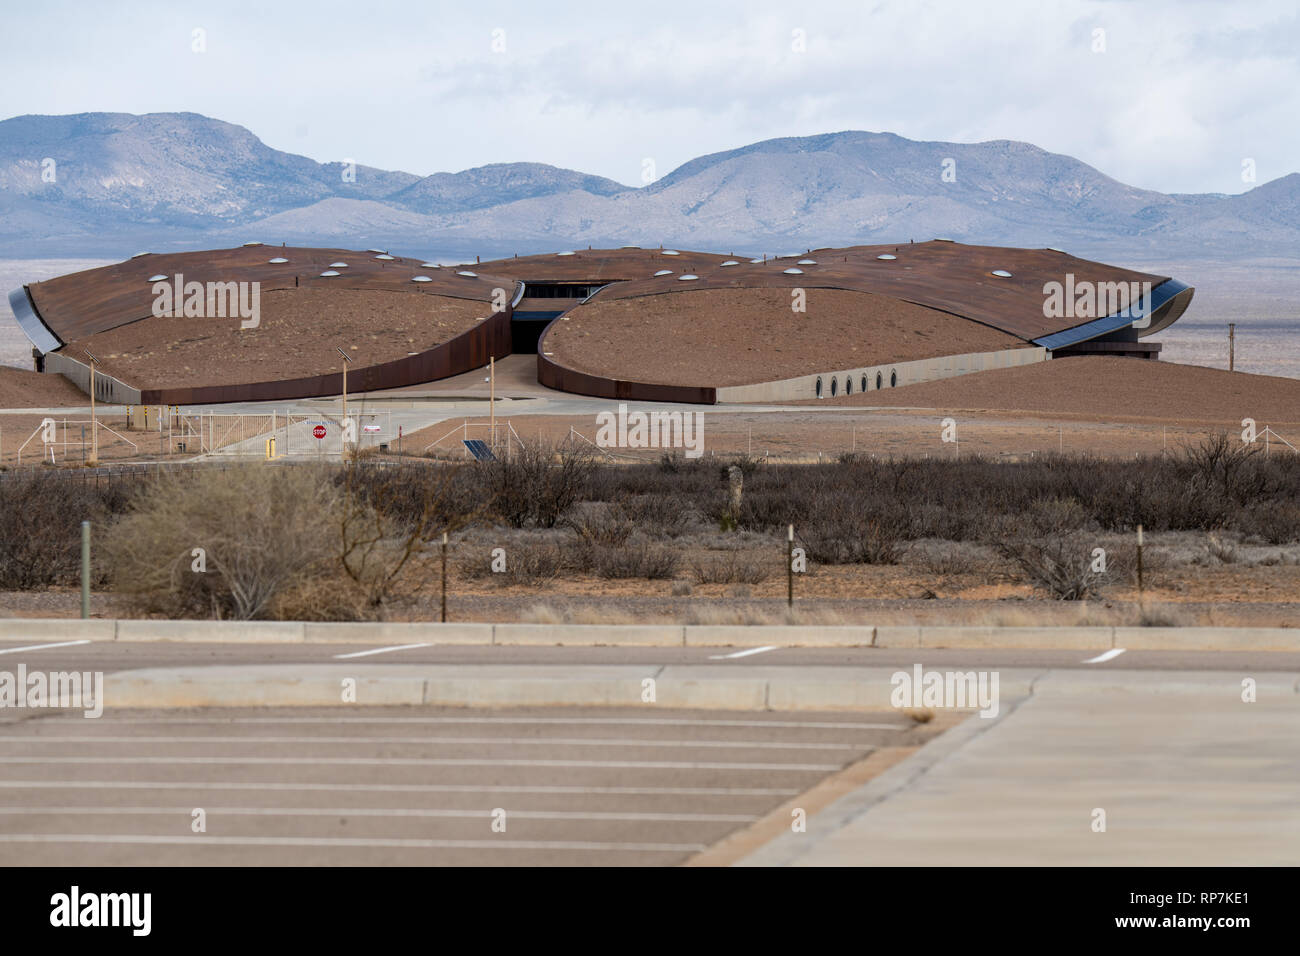 Spaceport America building is located in the high desert terrain of southern New Mexico, USA - Stock Image